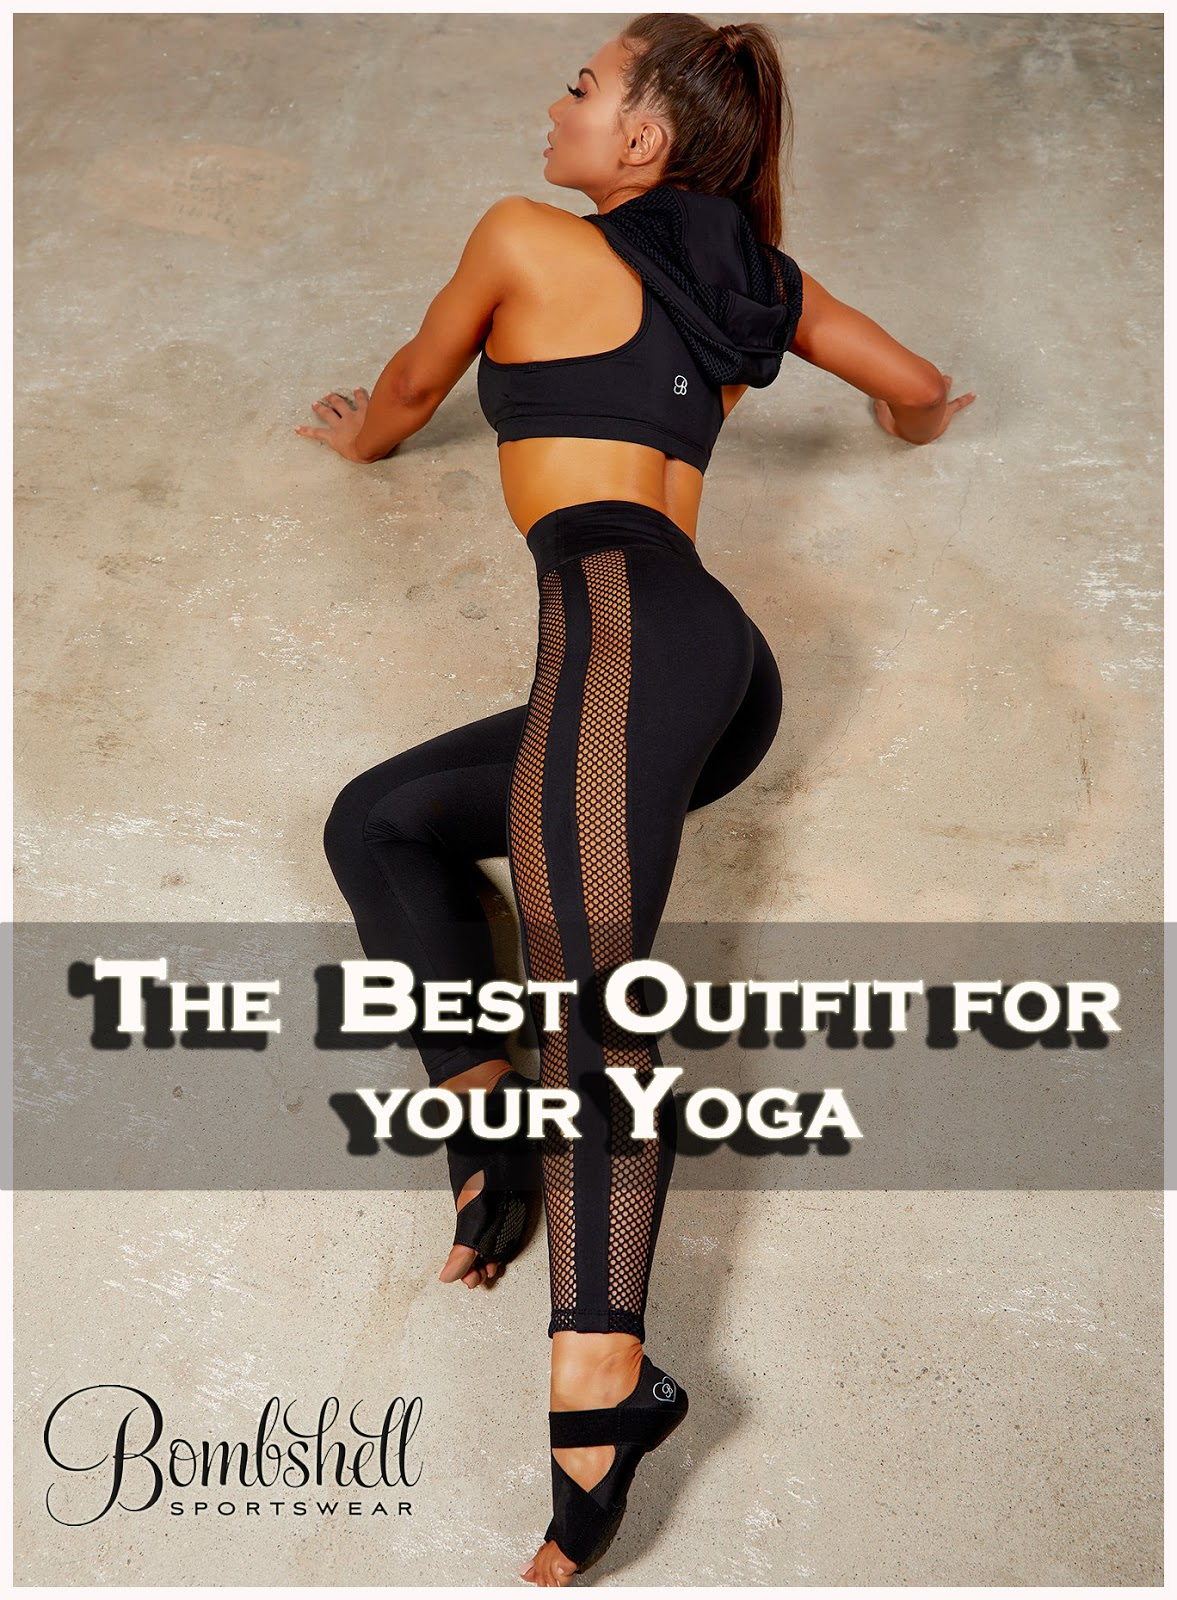 45286b8e47af6 Try the new arrival fashionable Yoga leggings designed by Bombshell  Sportswear for your yoga session. The fabrics are so flexible that it gives  ...